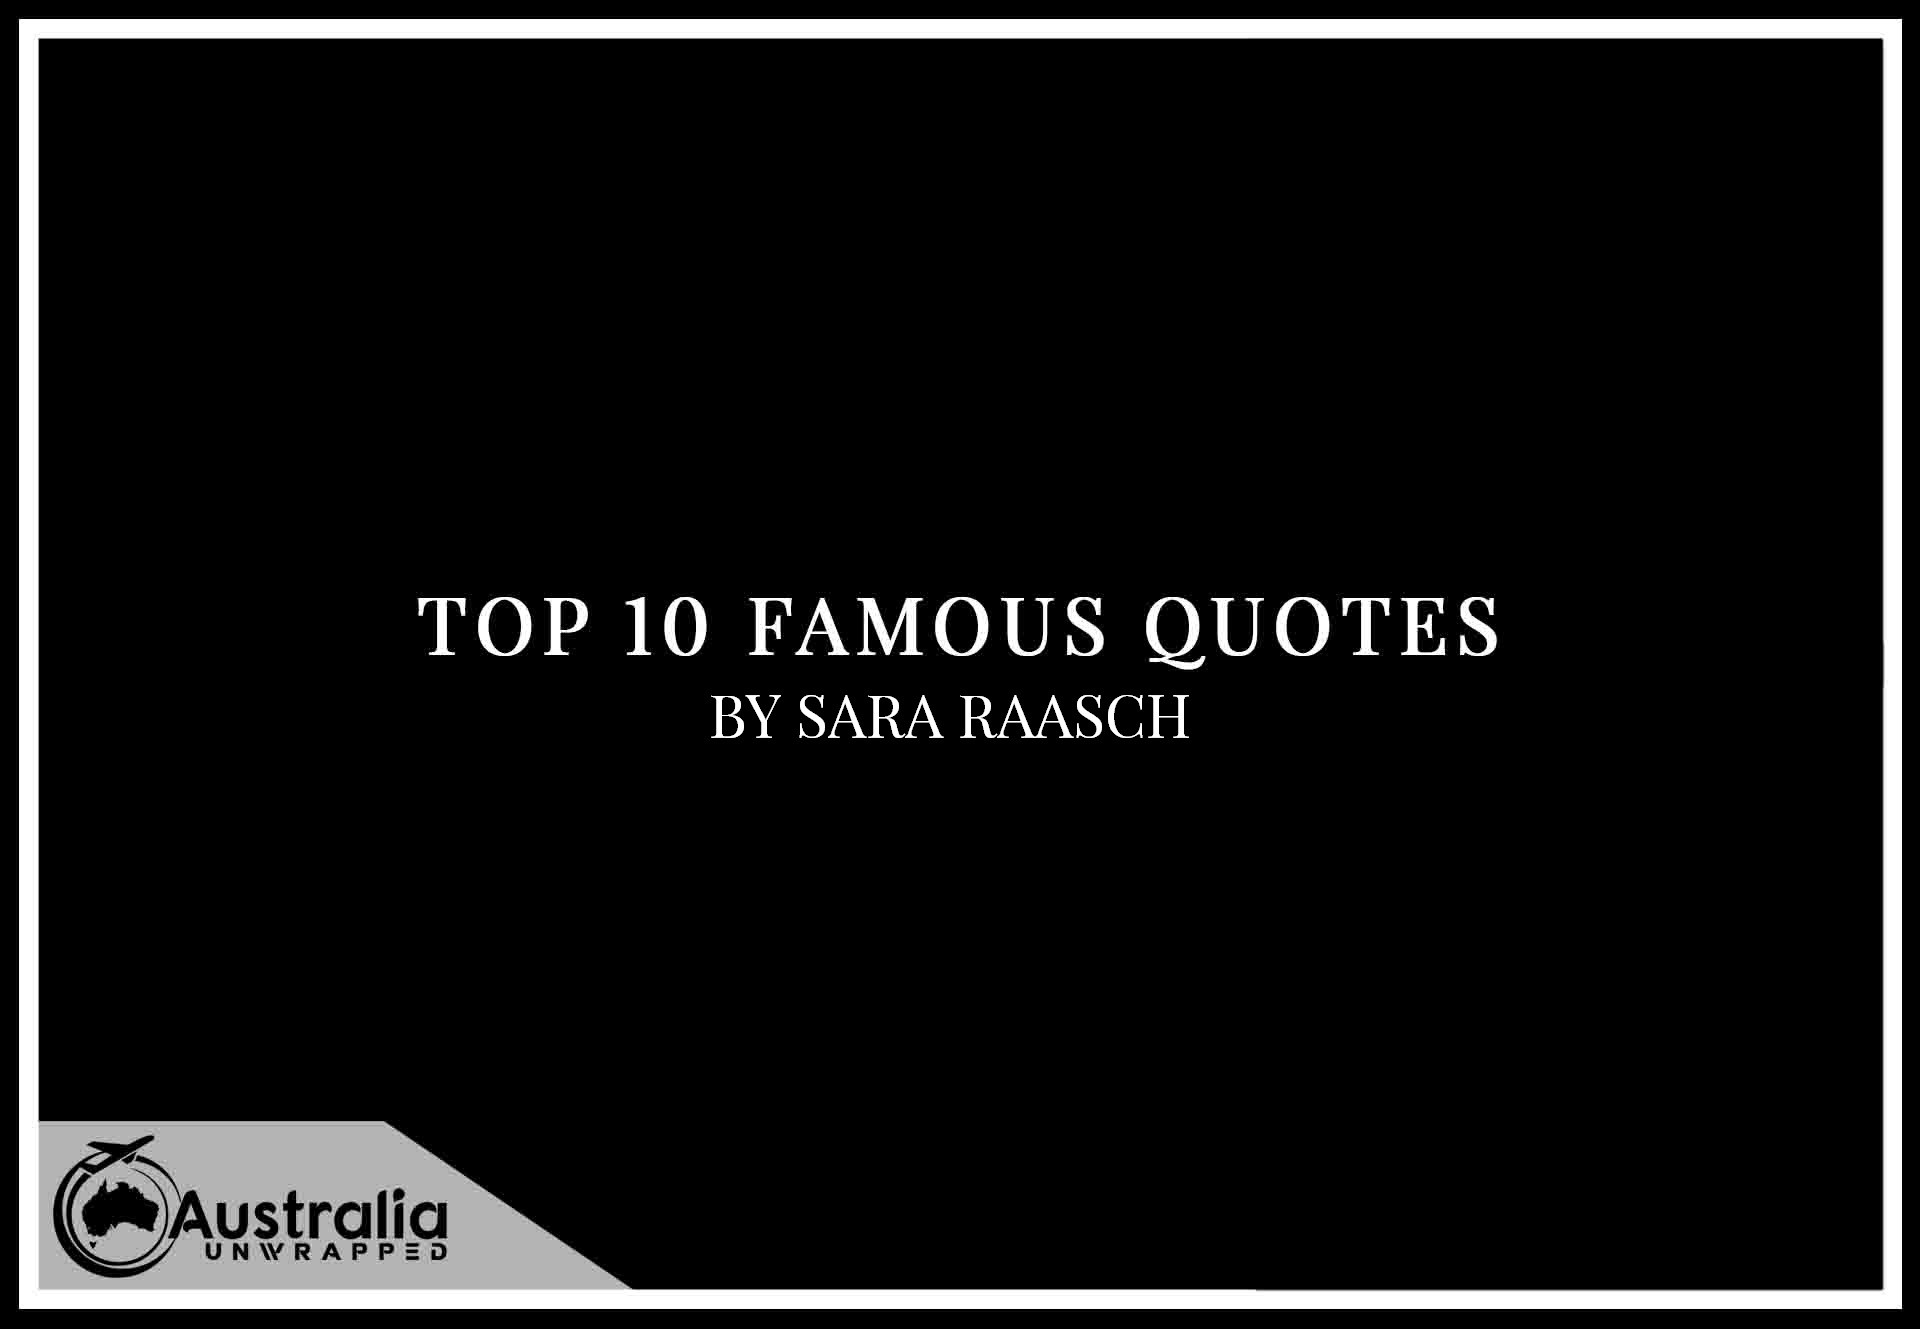 Top 10 Famous Quotes by Author Sara Raasch